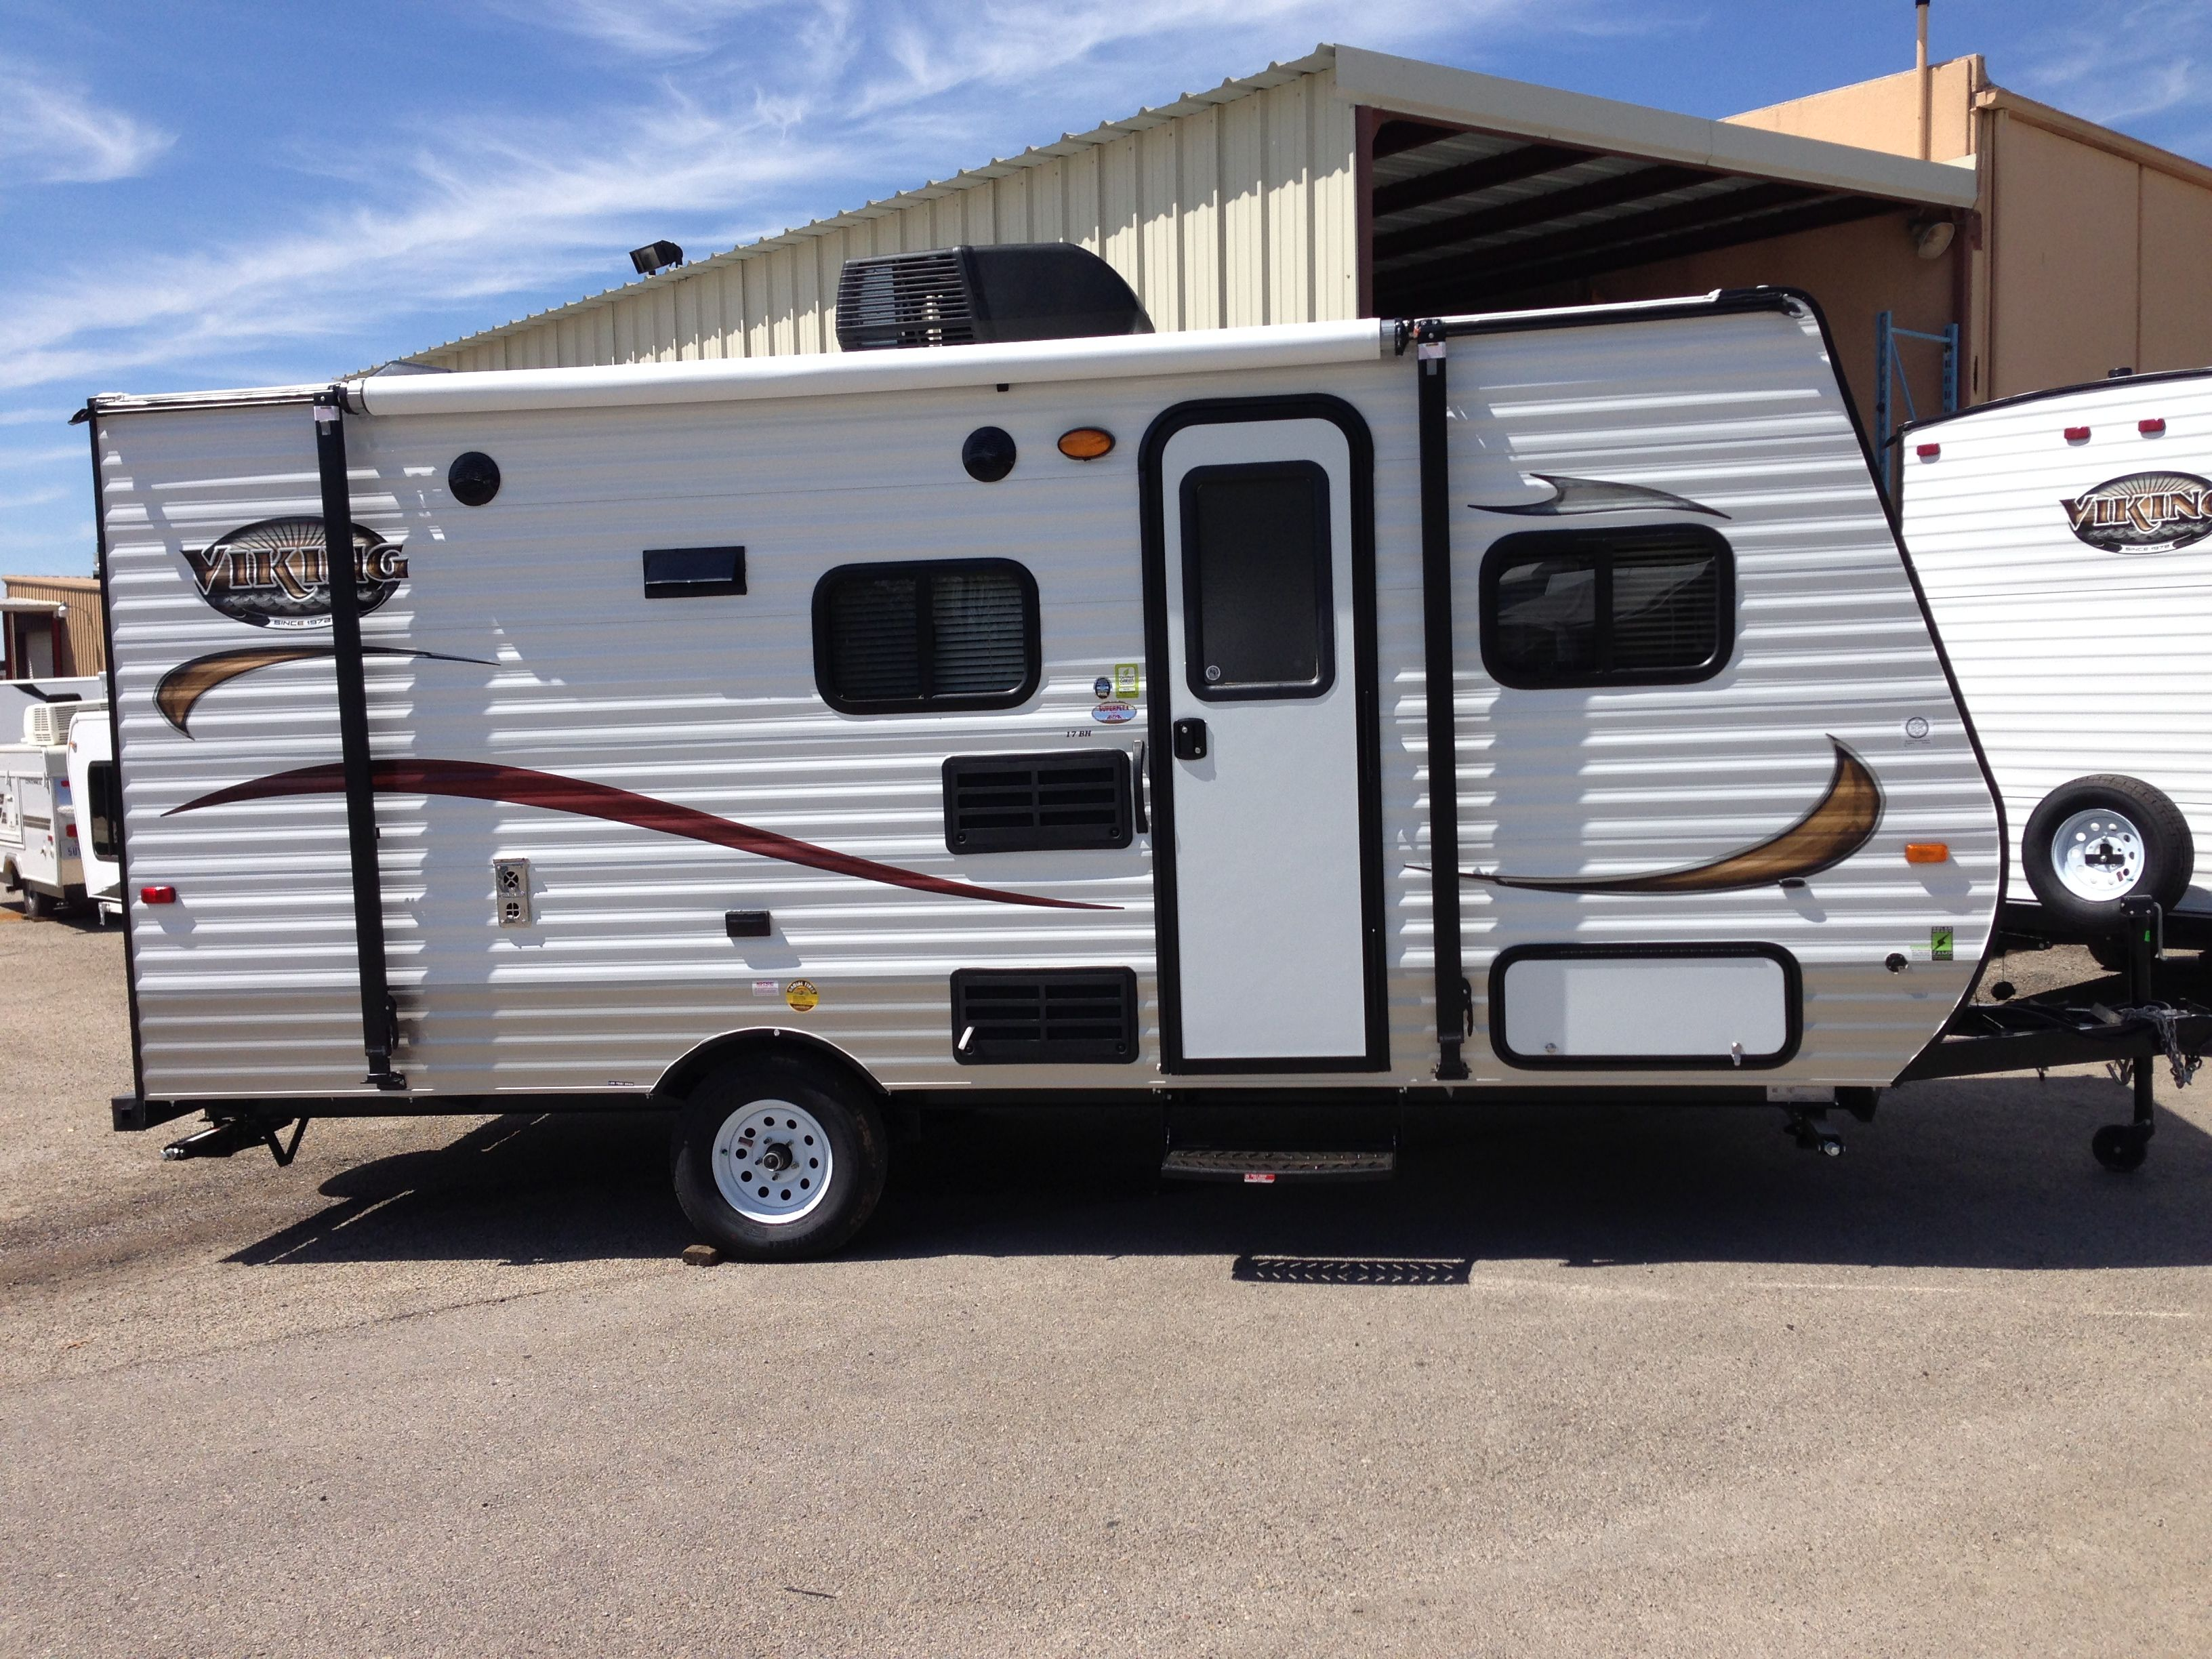 April 11 2014 Picked Up My Brand New 2015 Viking 17bh Travel Trailer From Western Campers In Fort Worth Camping In Texas Recreational Vehicles Travel Trailer